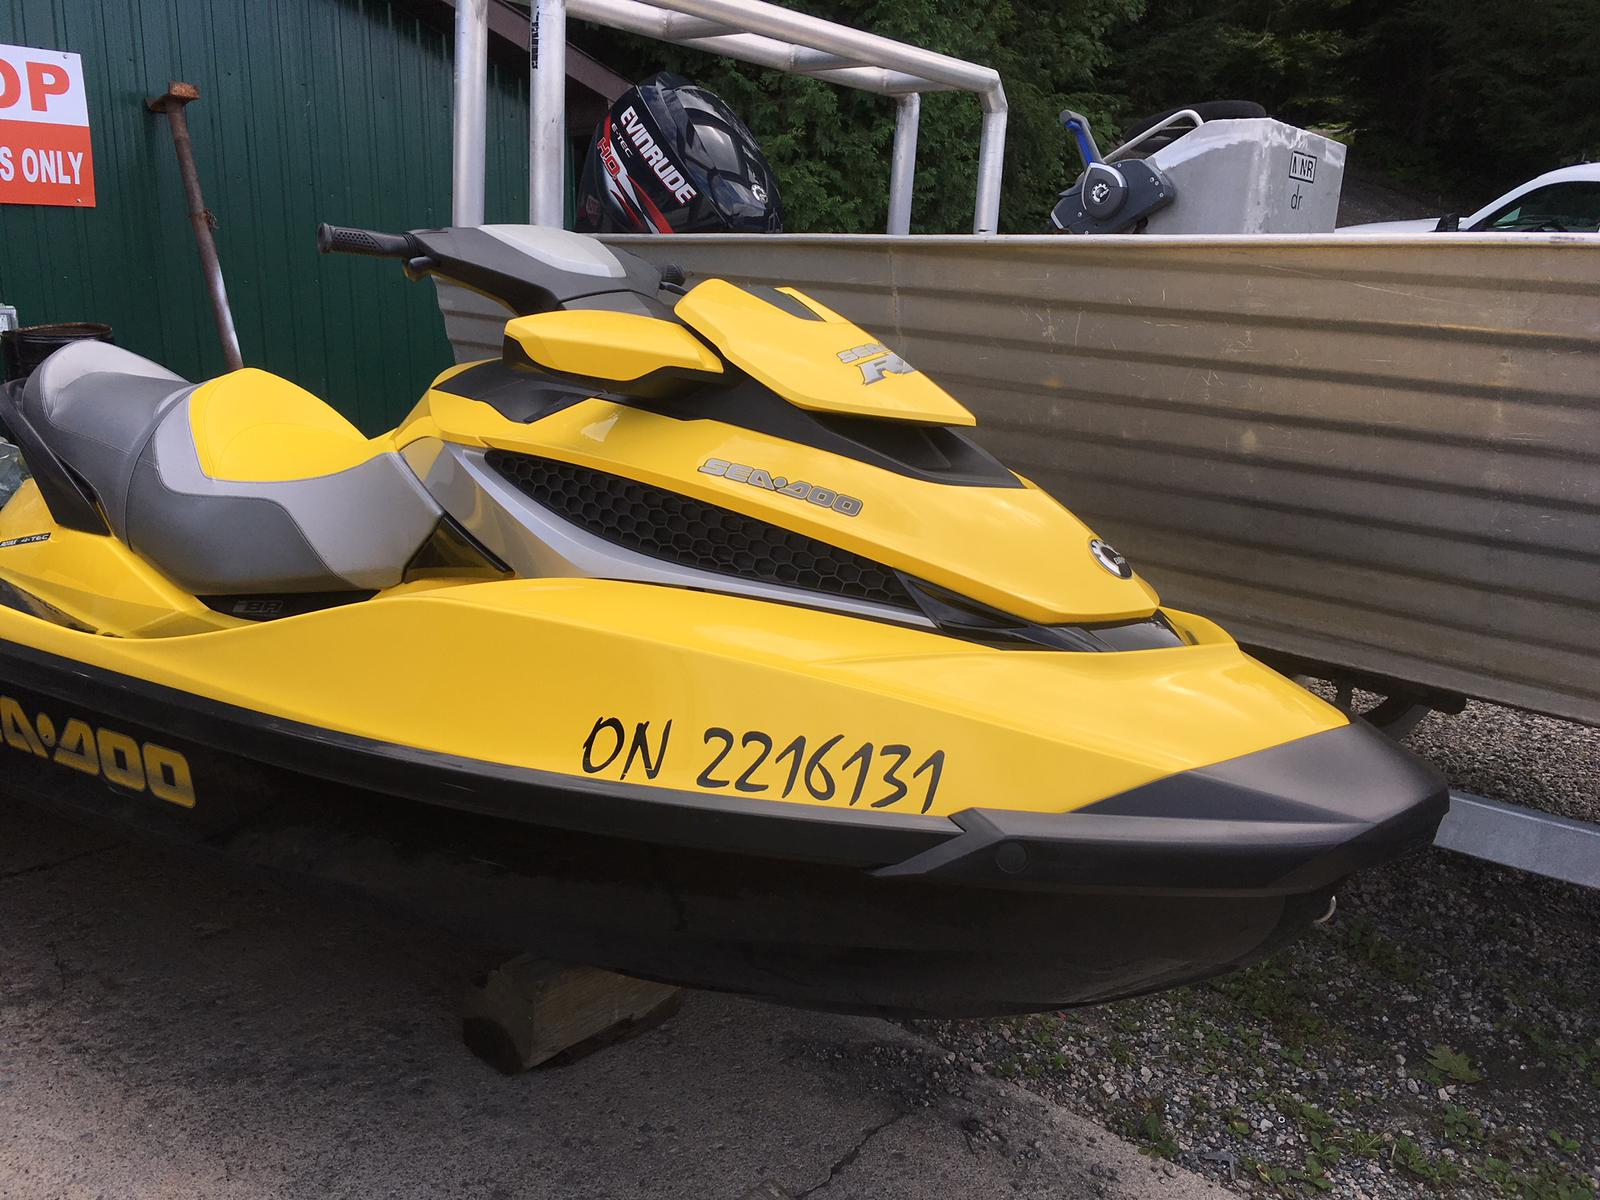 For Sale: 2010 Sea Doo Pwc Rxt 215 ft<br/>Harper Powersports And Marine- Minden